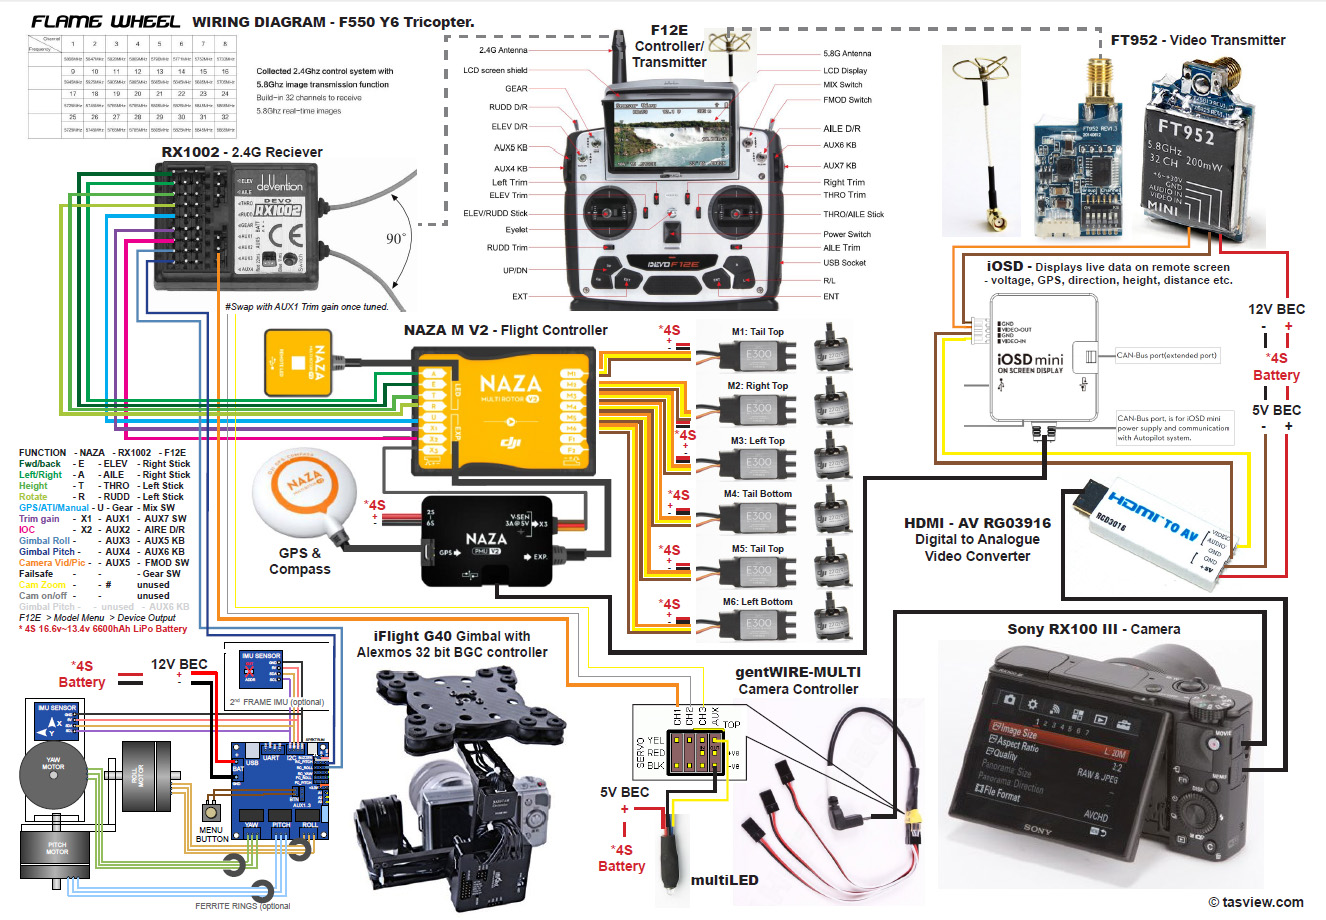 Peugeot 206 Lighting Wiring Diagram Simple Guide About Free Download For Naza Quadcopter Data Diagrams Headlight